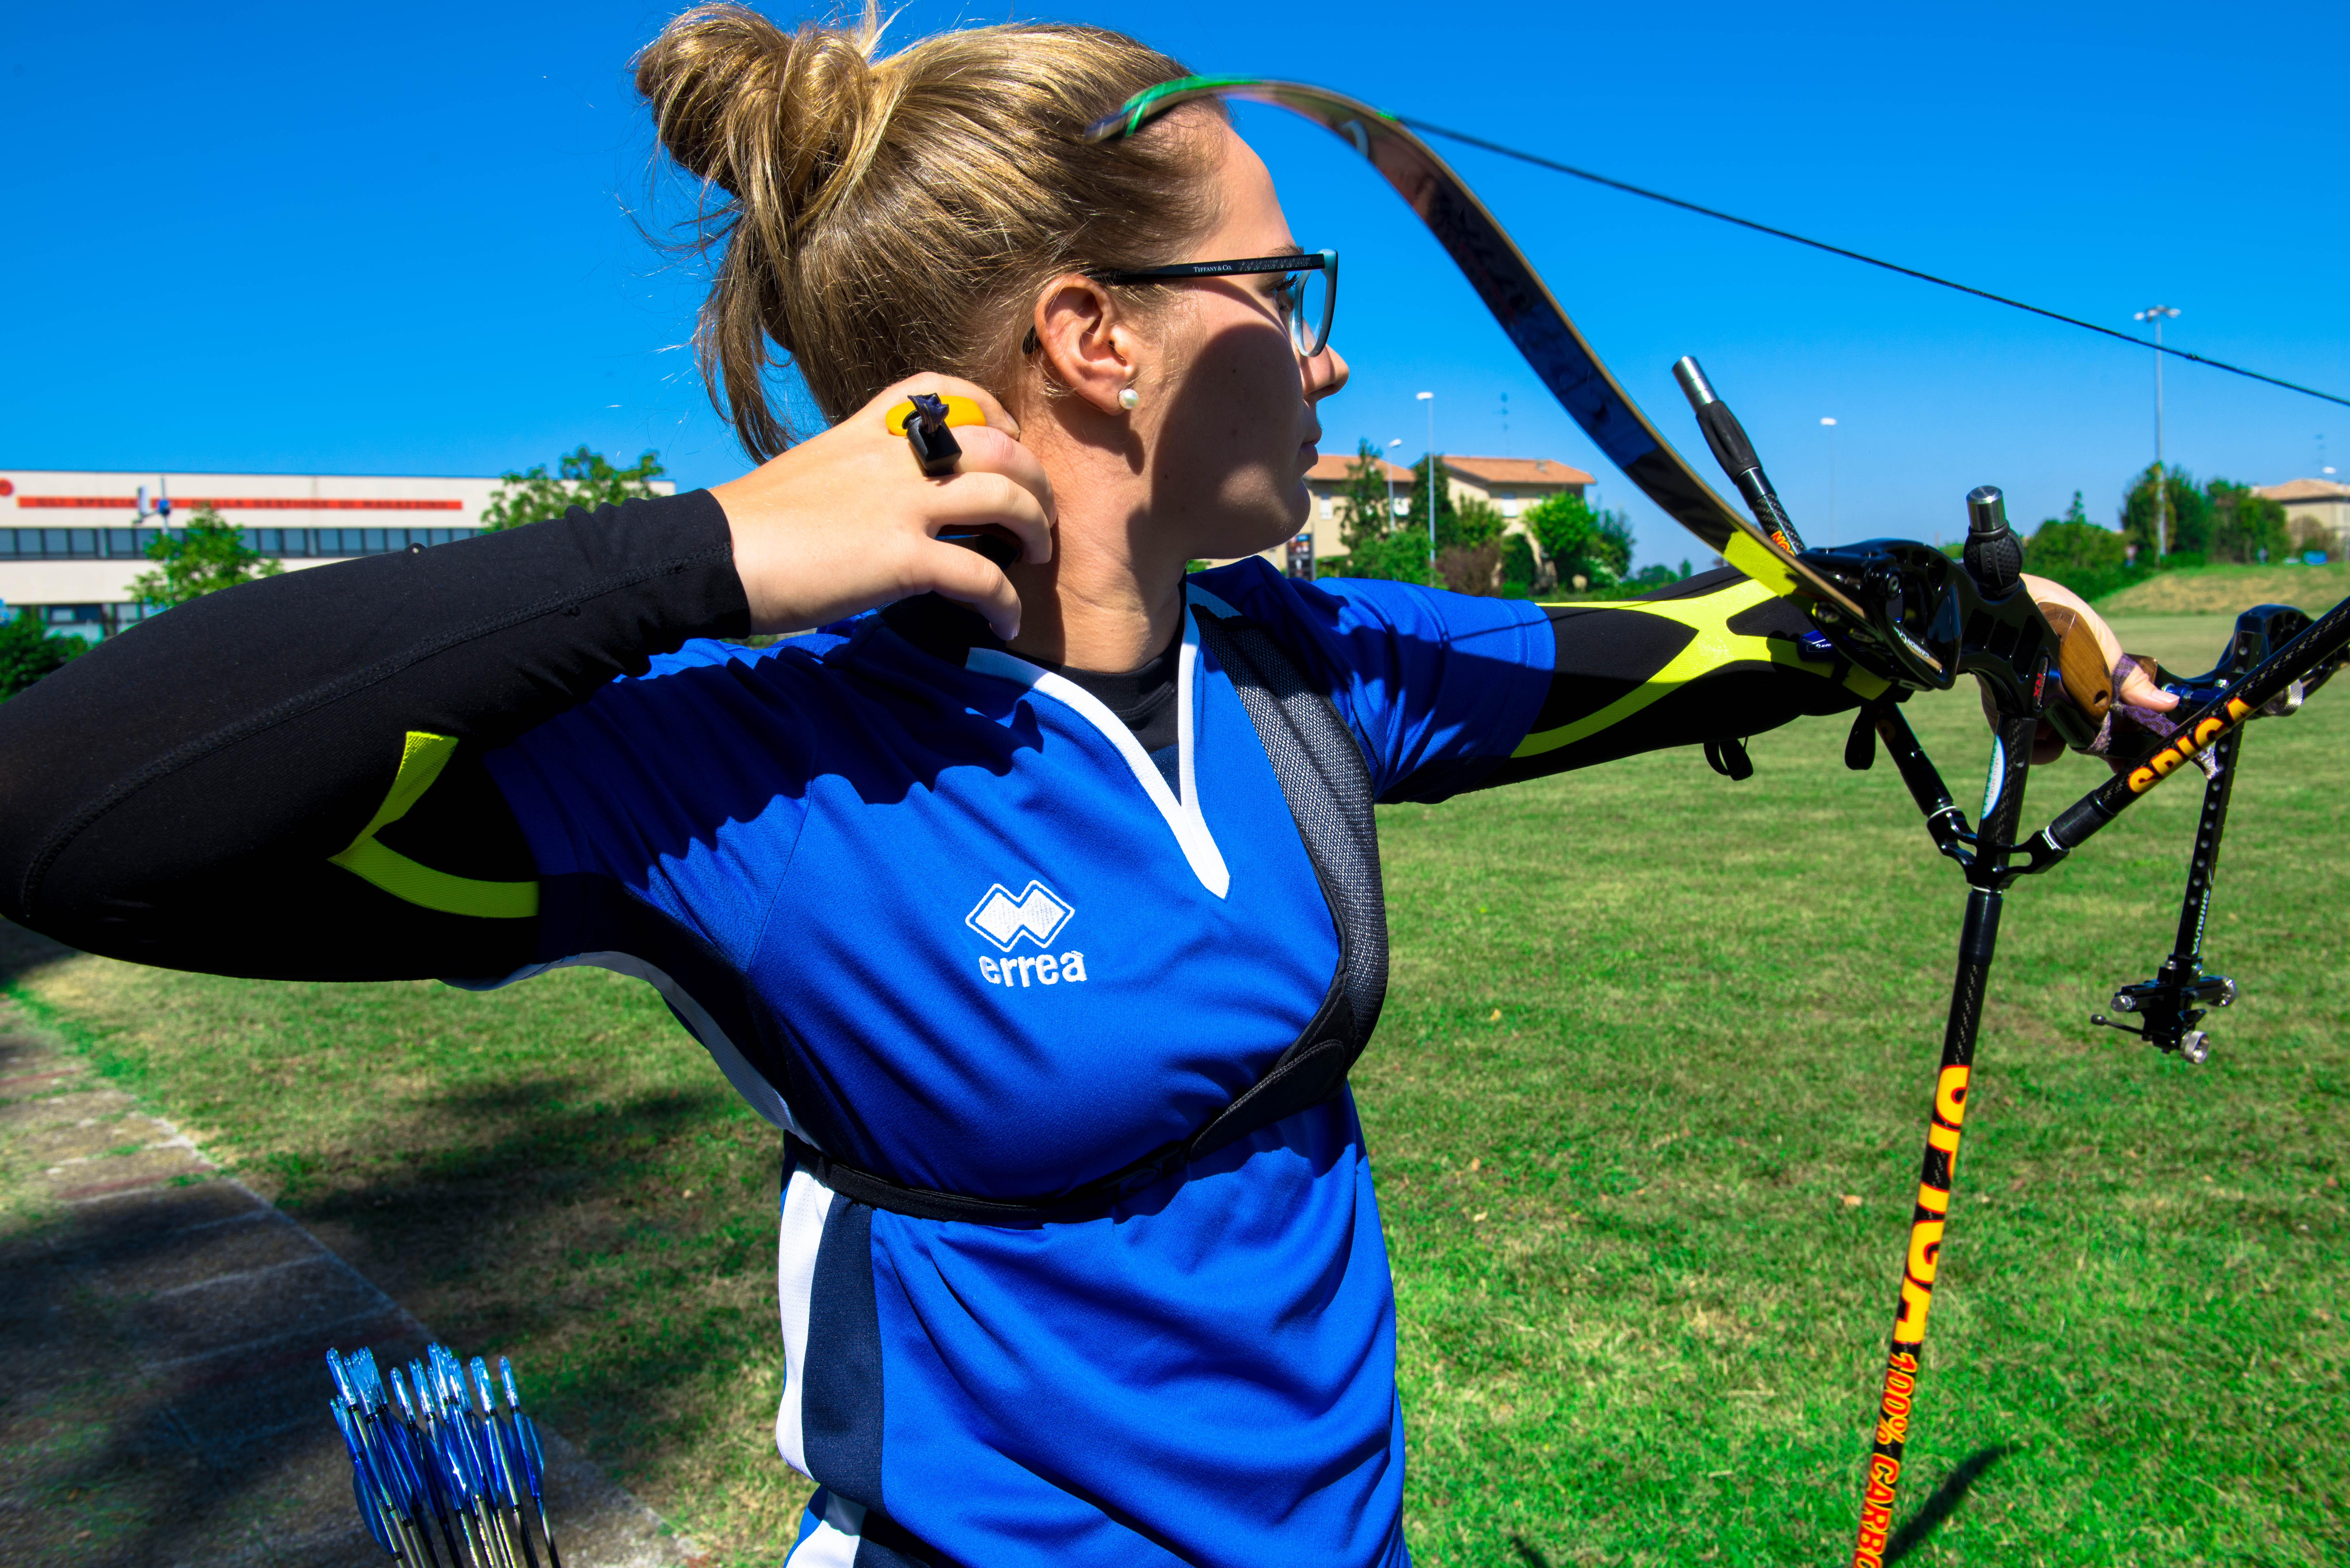 Archery: Italy are World Women's Junior Champions!